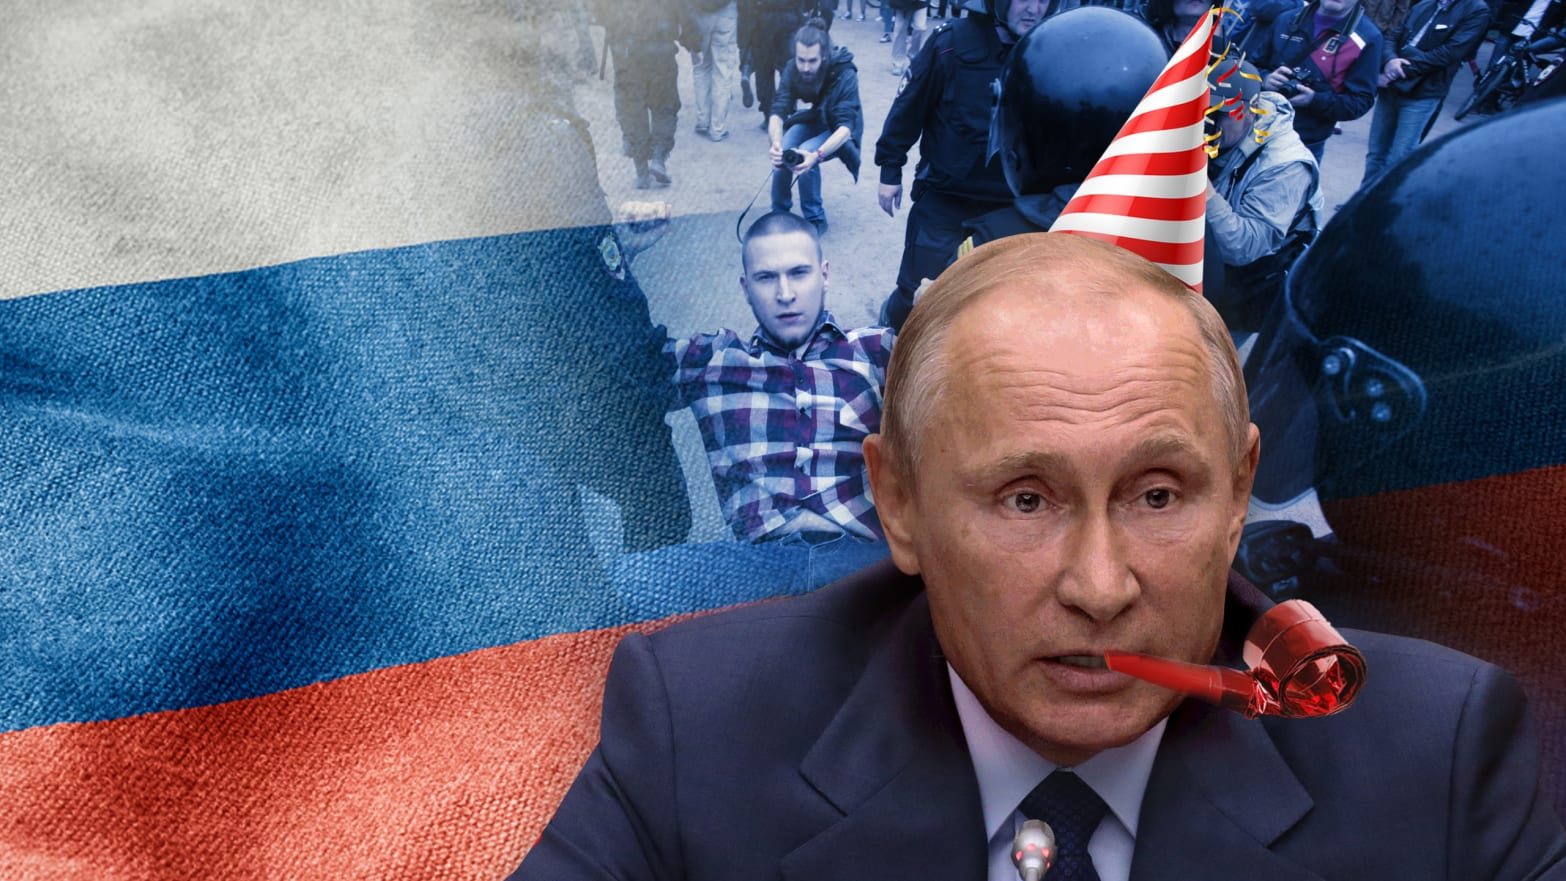 For Putin's 65th Birthday, a Crackdown on His Opponents